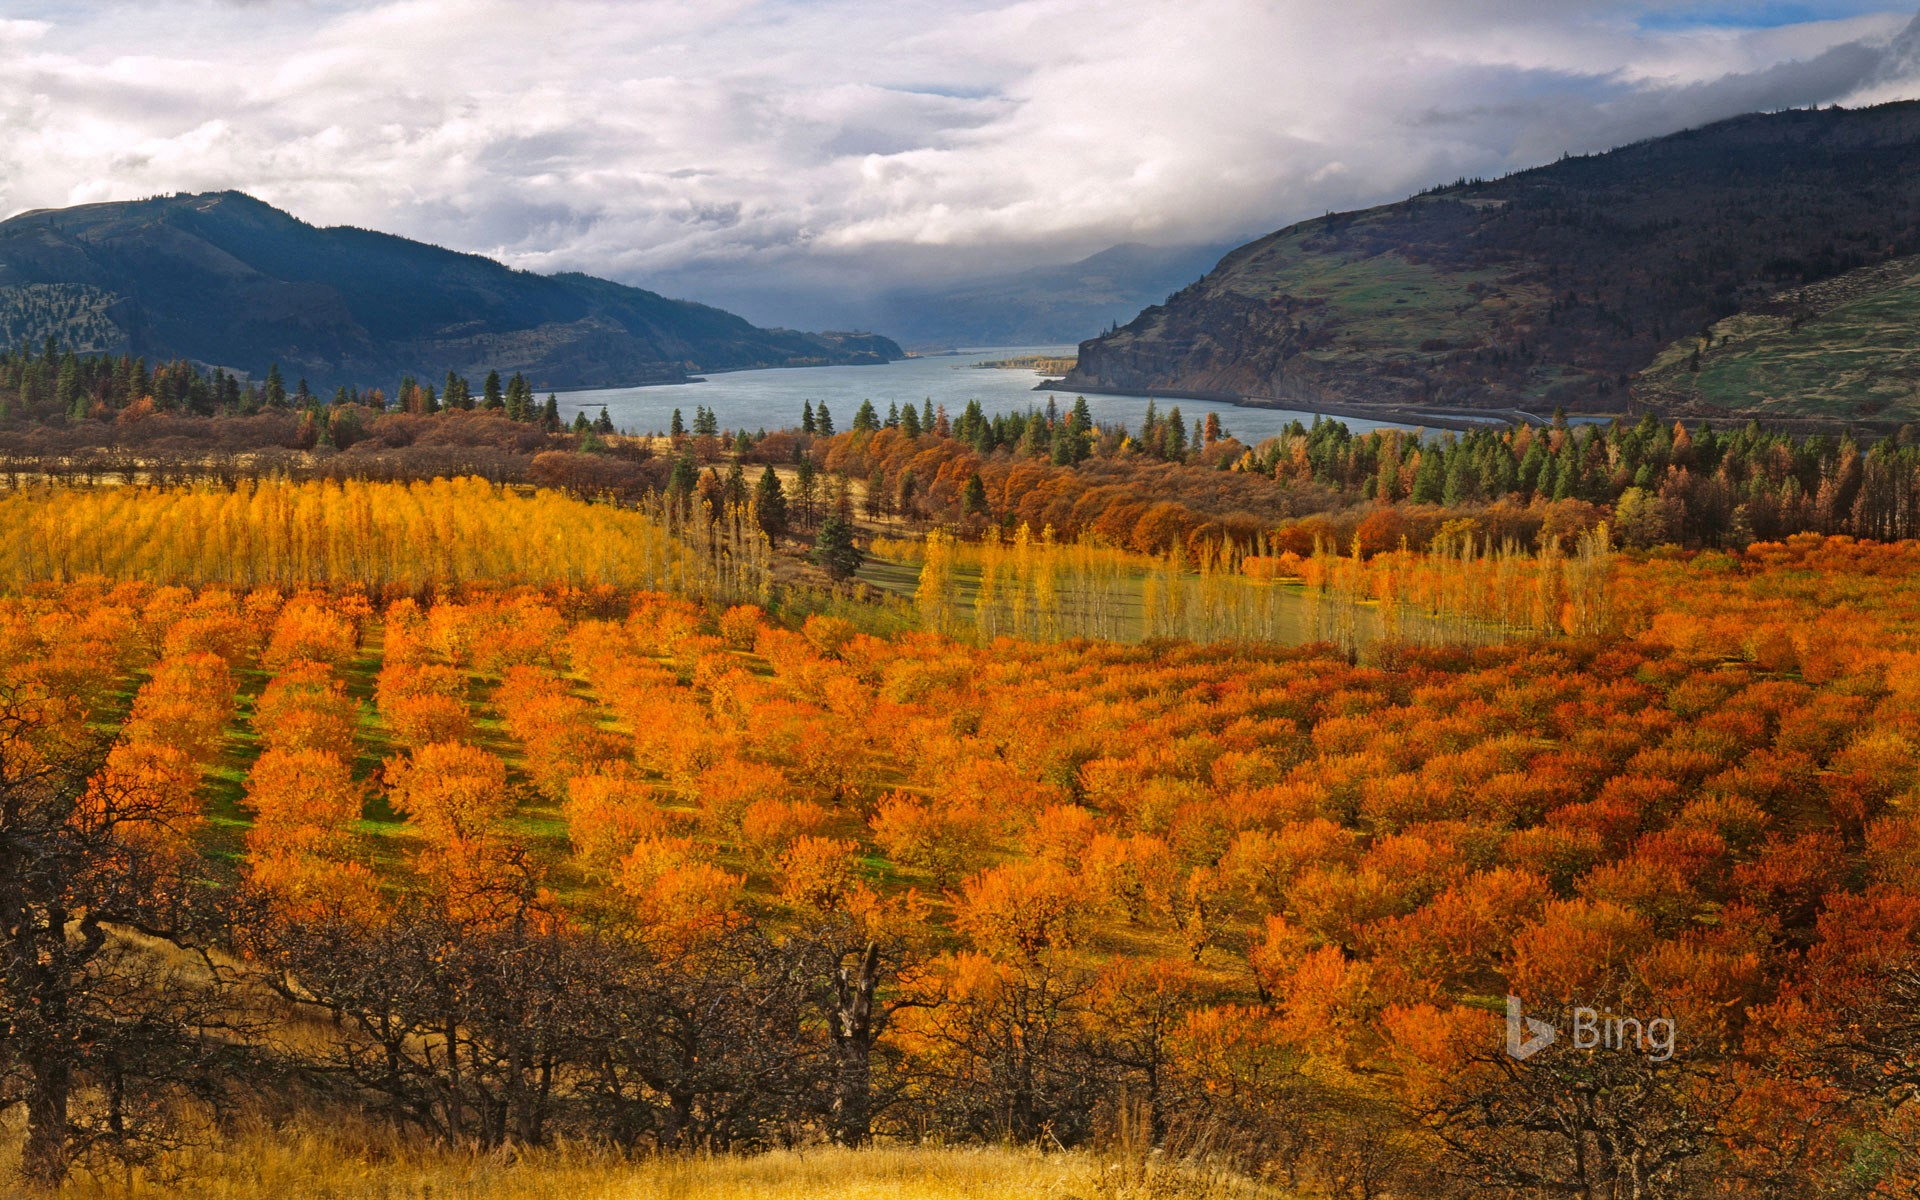 Cherry orchards in the Columbia River Gorge National Scenic Area, Oregon